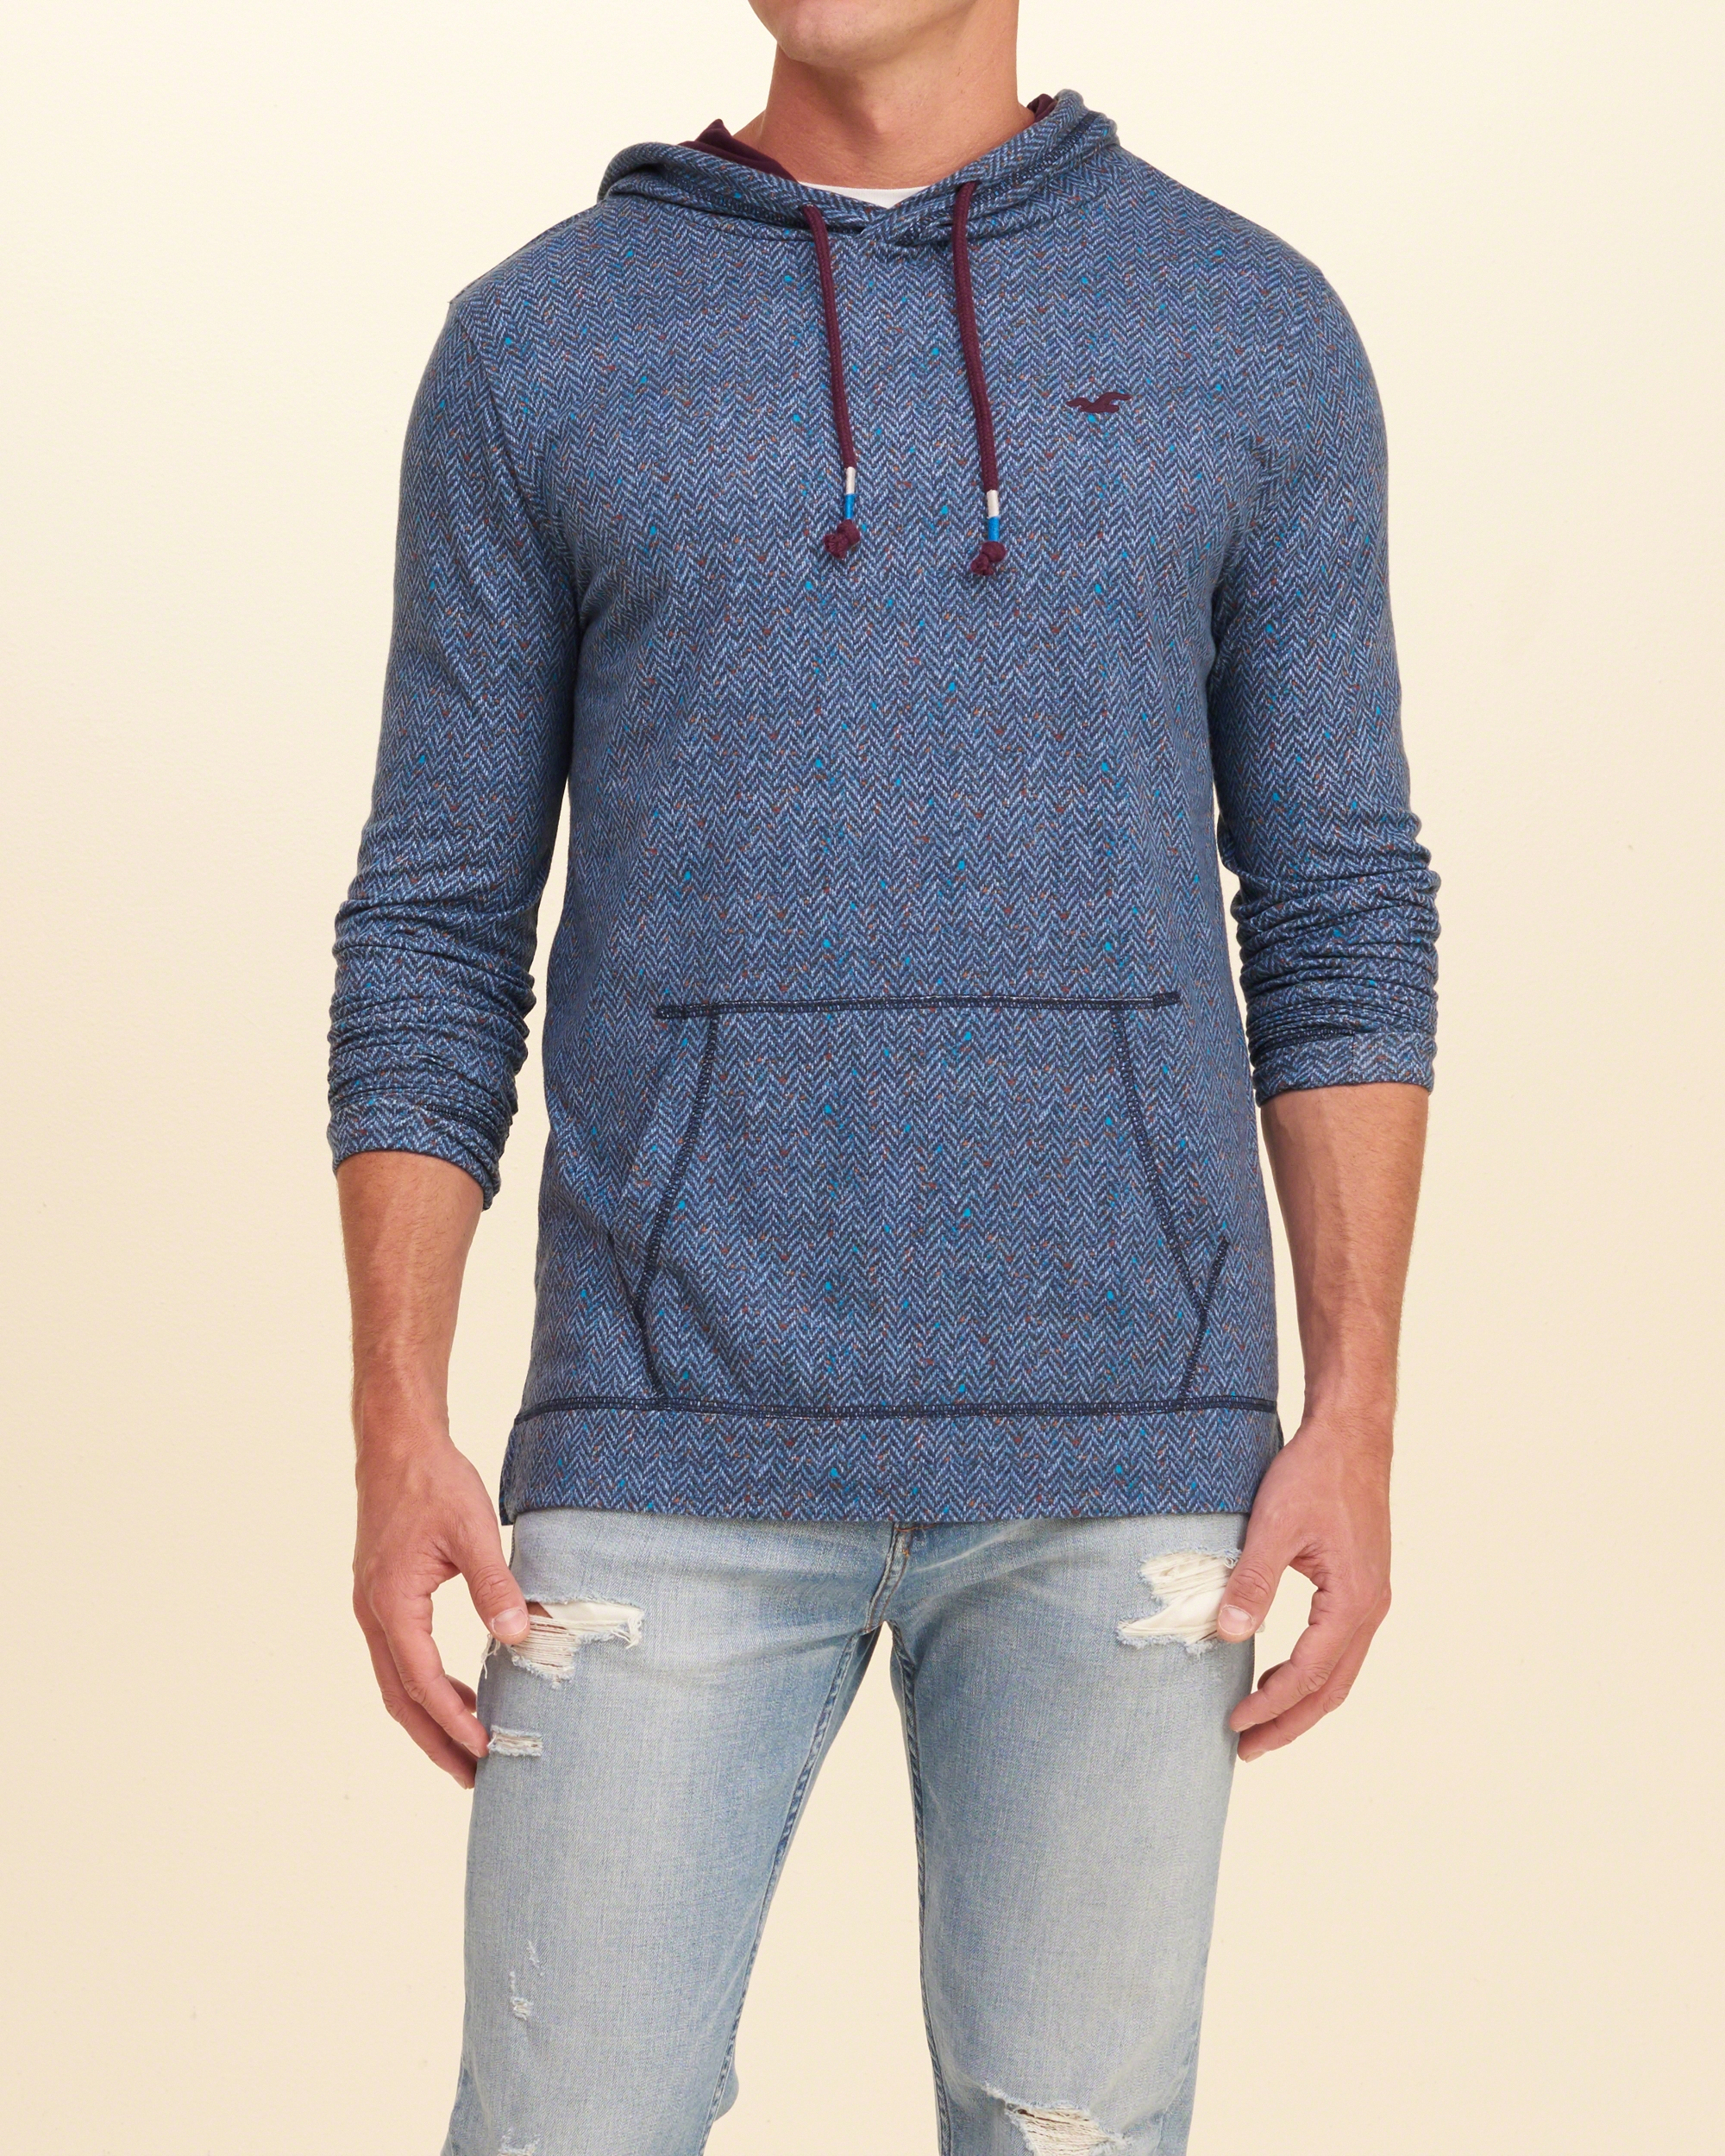 Hollister Sweaters Hollister Hoodies Hollister Shirts Hollister Jacket Hollister Pants Hollister Jeans: Hollister Overhead Hoodie With Logo In Blue For Men